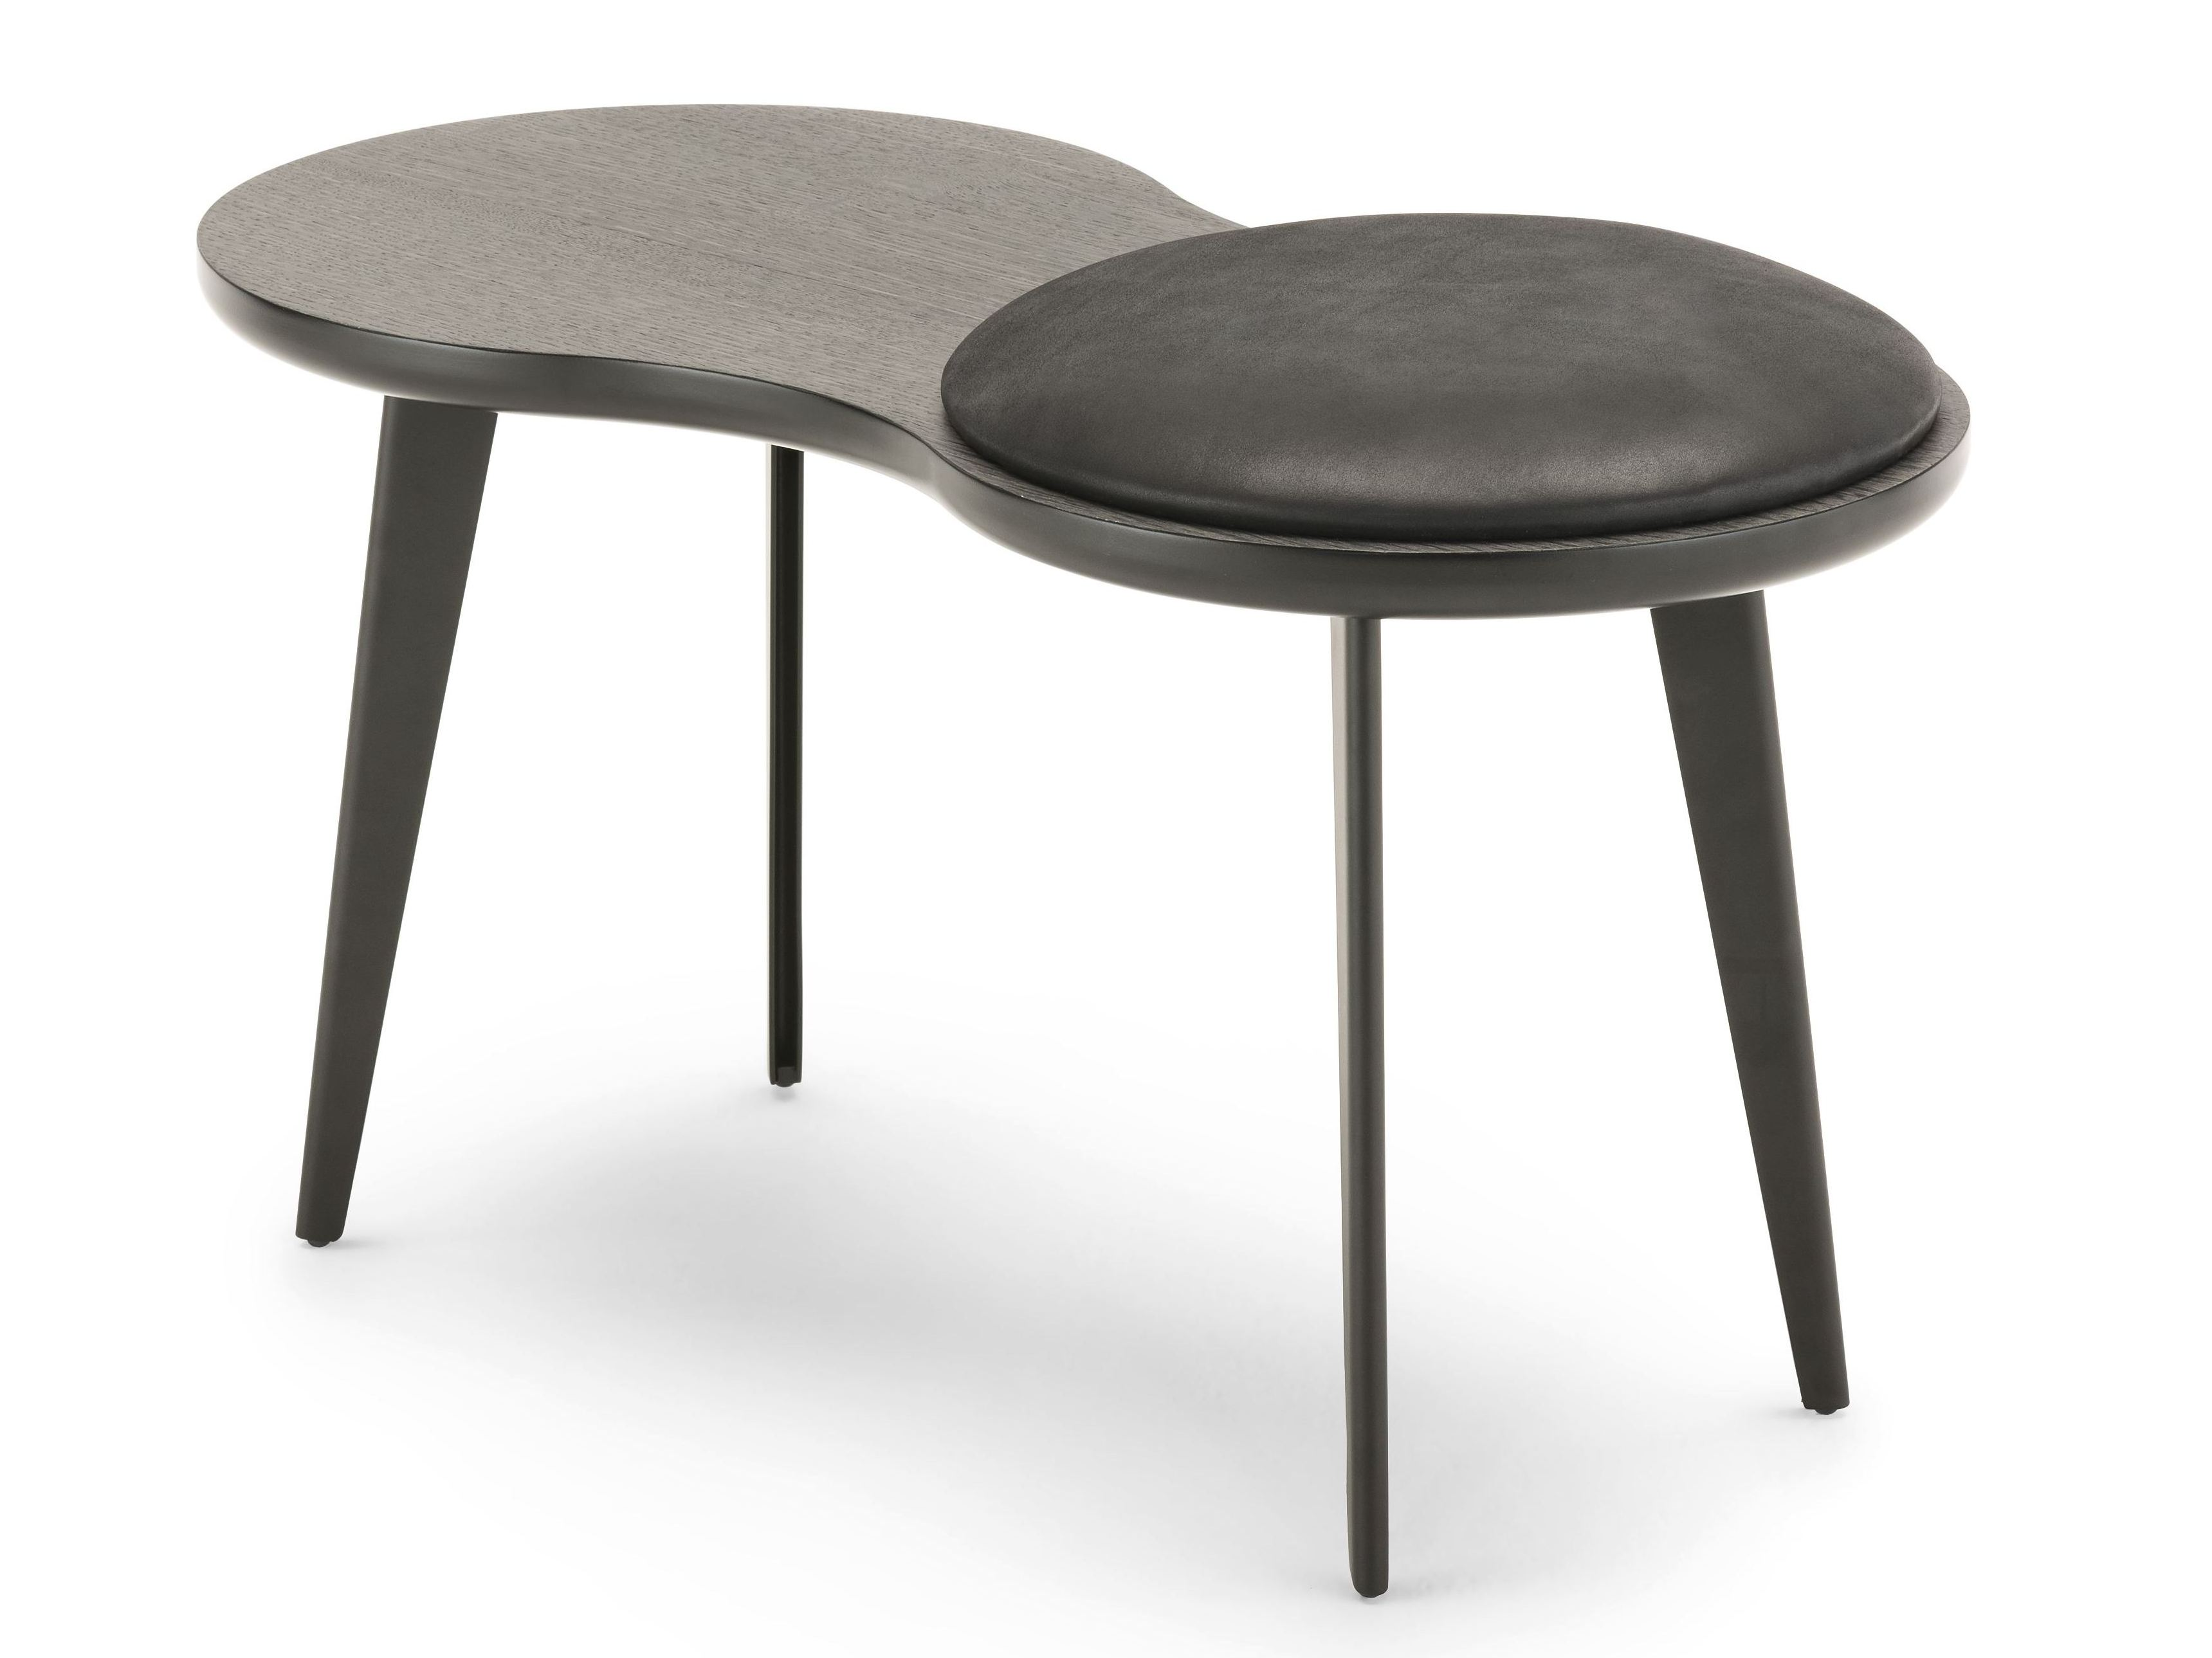 Wooden Stool Coffee Table Imago Imago Collection By Living Divani Design Mikael Pedersen